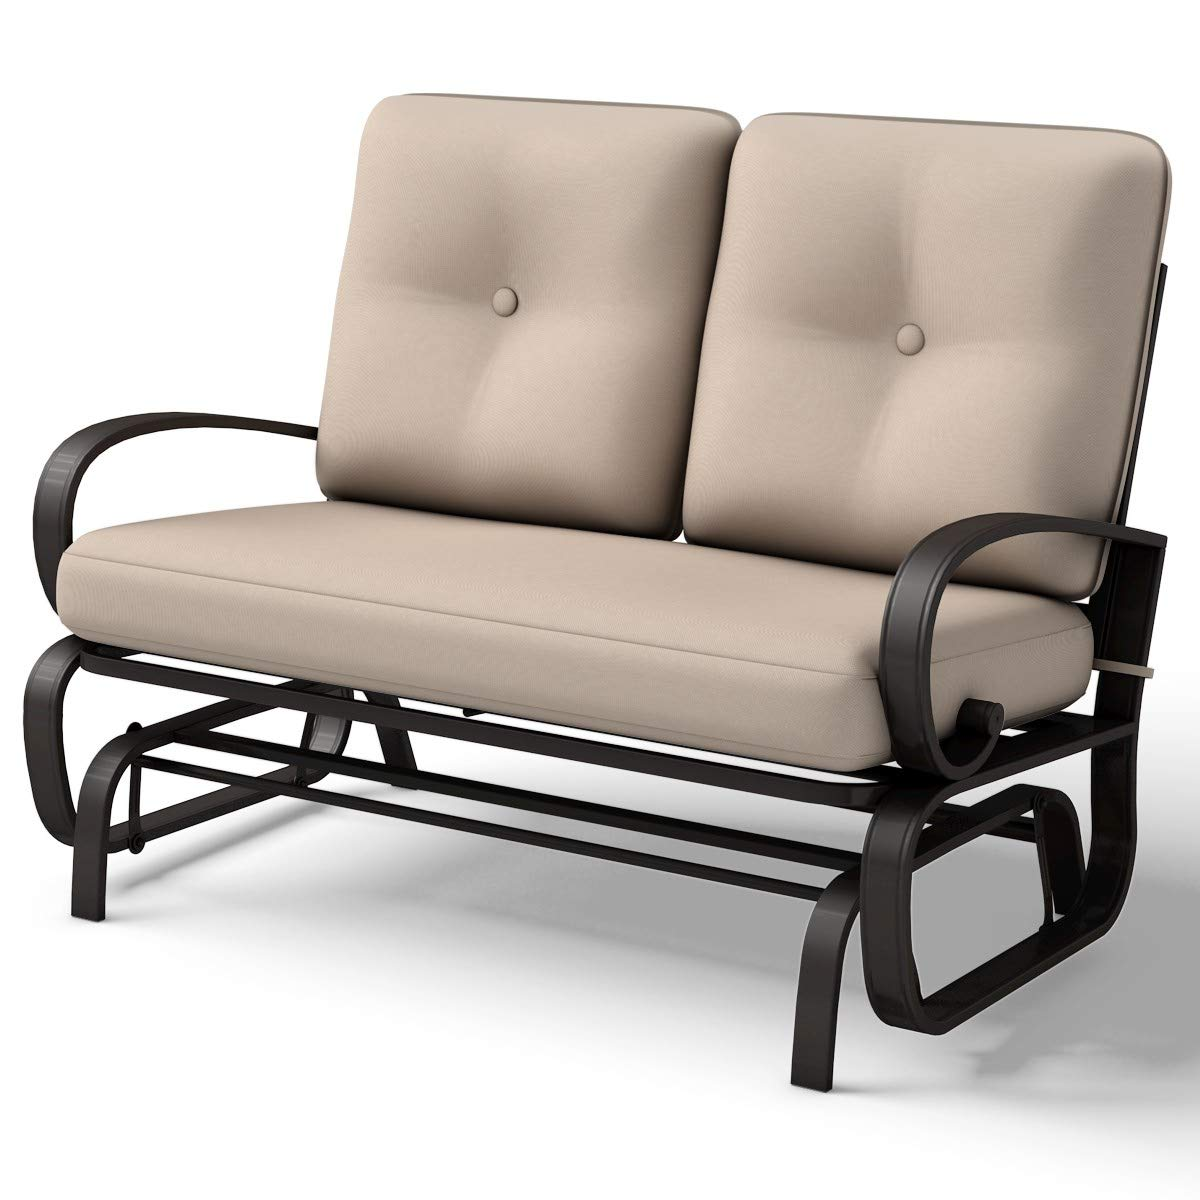 Giantex Loveseat Outdoor Patio Rocking Glider Cushioned 2 Seats Steel Frame Furniture by Giantex